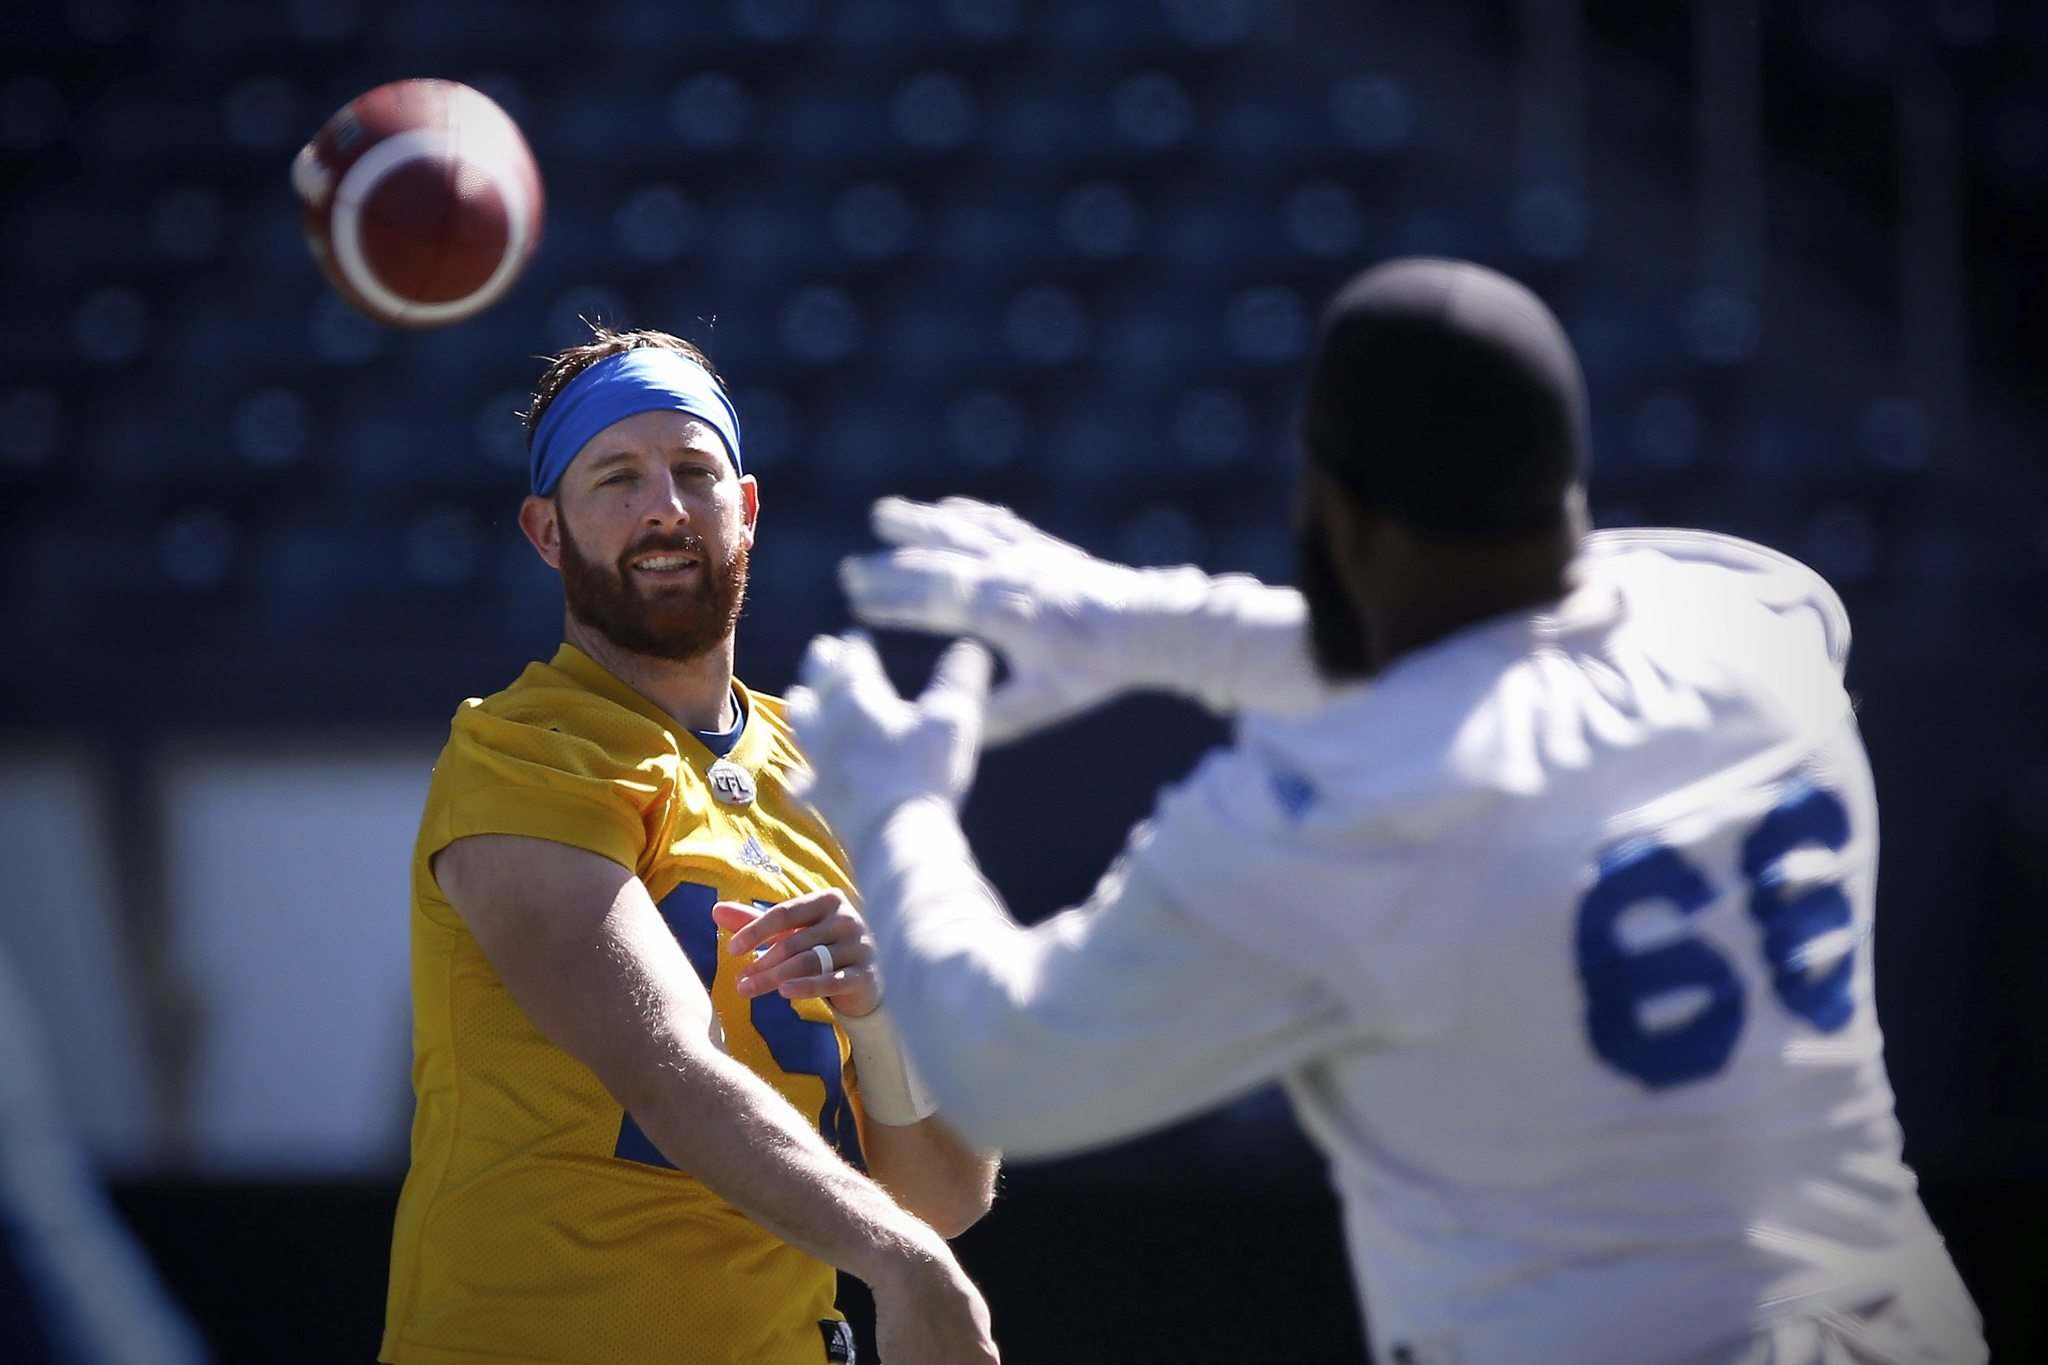 JOHN WOODS / WINNIPEG FREE PRESS</p><p>The Blue Bombers&rsquo; Corey Washington catches during practice at the University of Manitoba in Winnipeg on Wednesday. He stumbled on a key play in his recent CFL debut, but says the whole squad is hungry for a win.</p>